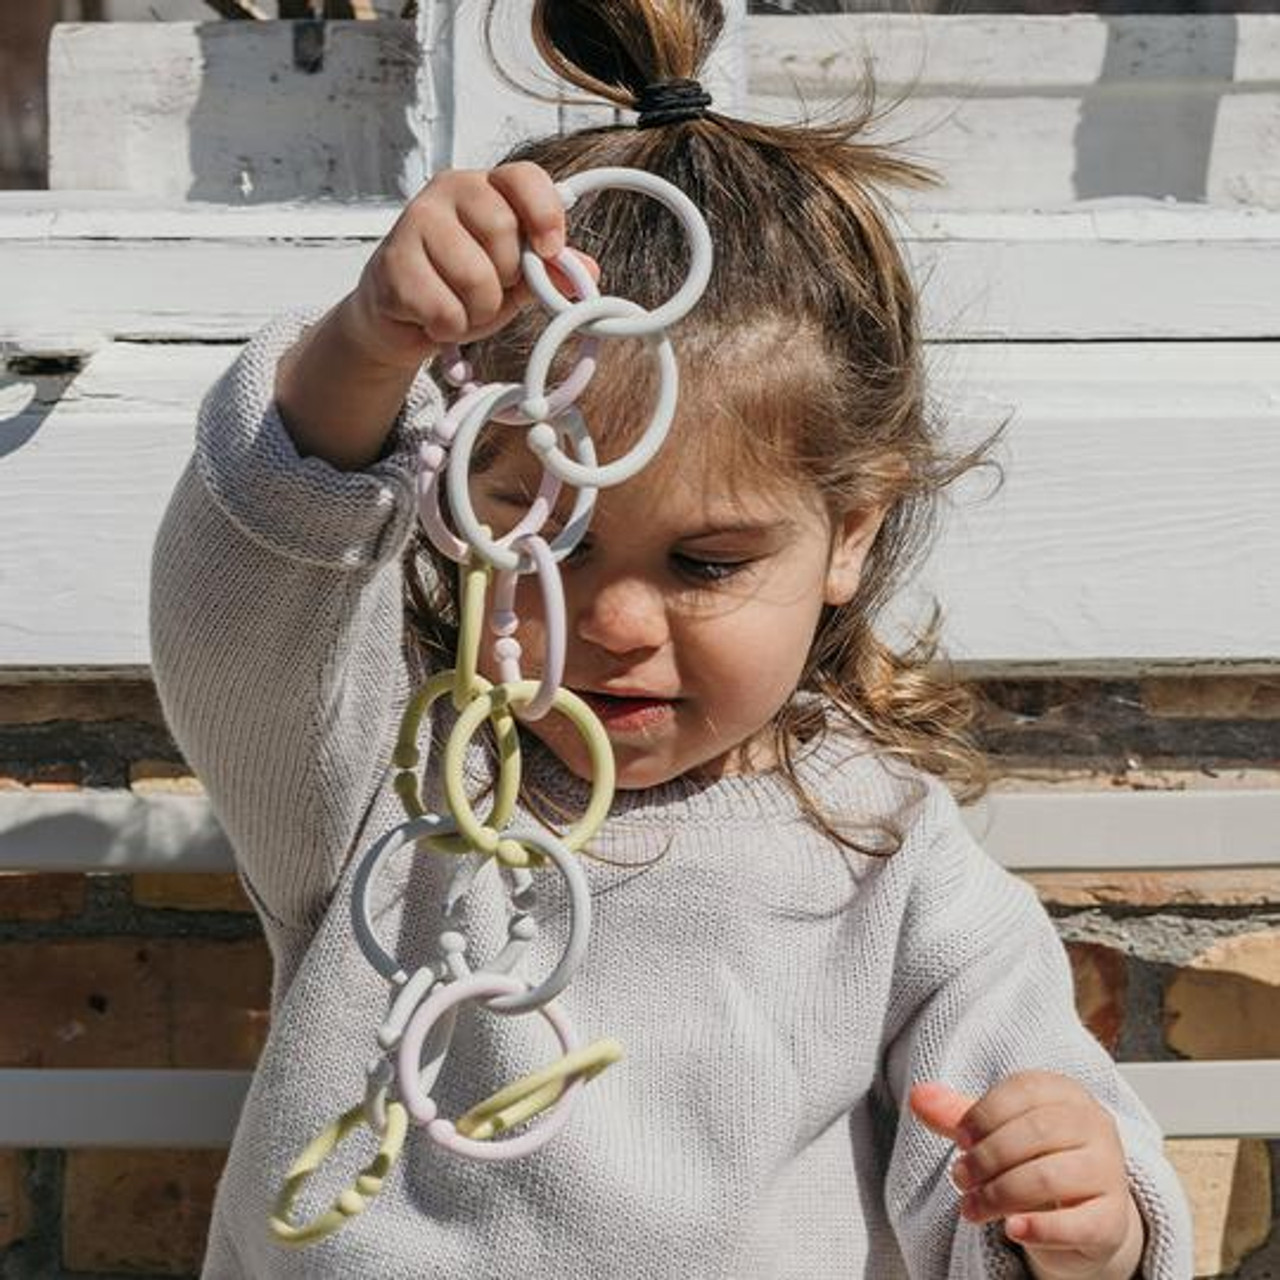 BIBS Loops 12 Pack at Baby Barn Discounts The ultimate multipurpose product. Use them to keep track of the little stuff so you don't have to. Loops entertain little ones and help with their growth and development.